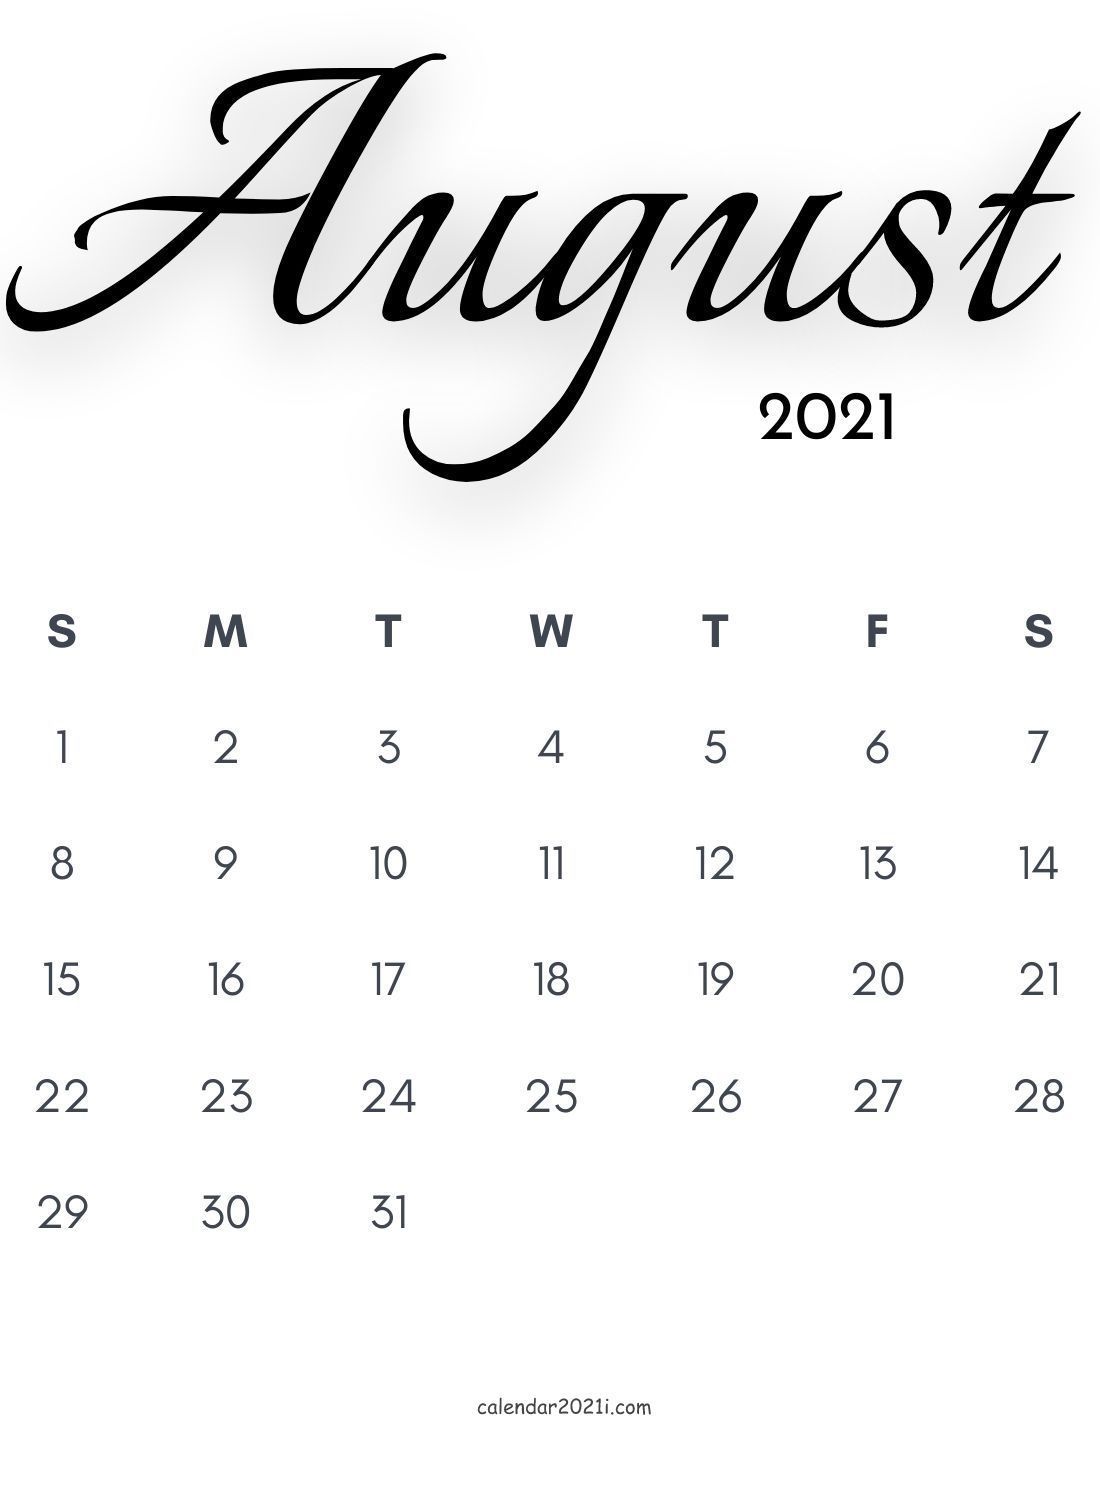 August 2021 Calligraphy Calendar Free Download In 2020 Monthly Calendar Printable Calligraphy Calendar Monthly Calendar Template